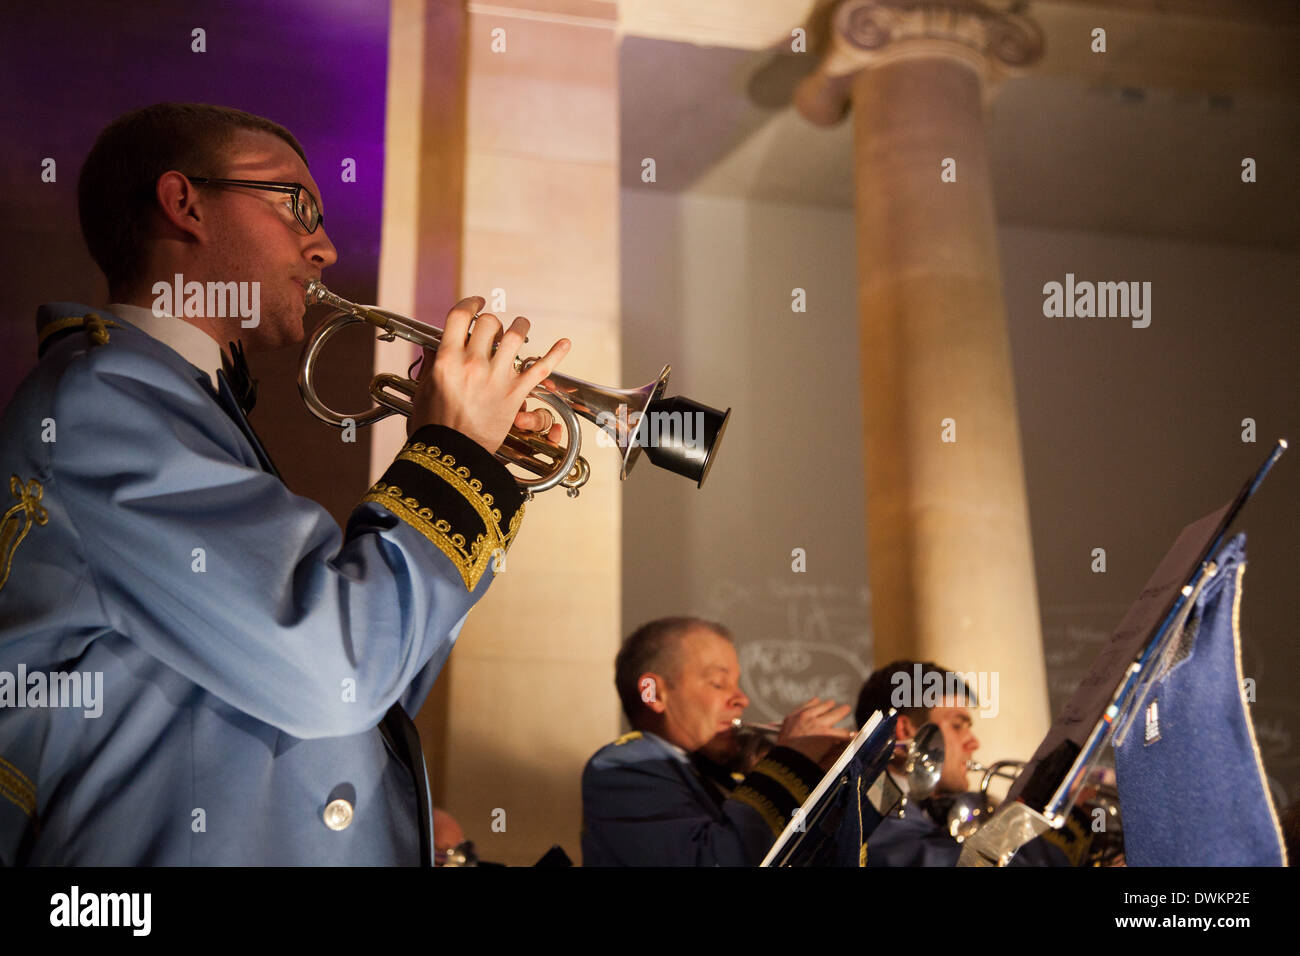 Jeremy Deller's Acid Brass featuring Fairey Brass Band in the Duveen Galleries. - Stock Image